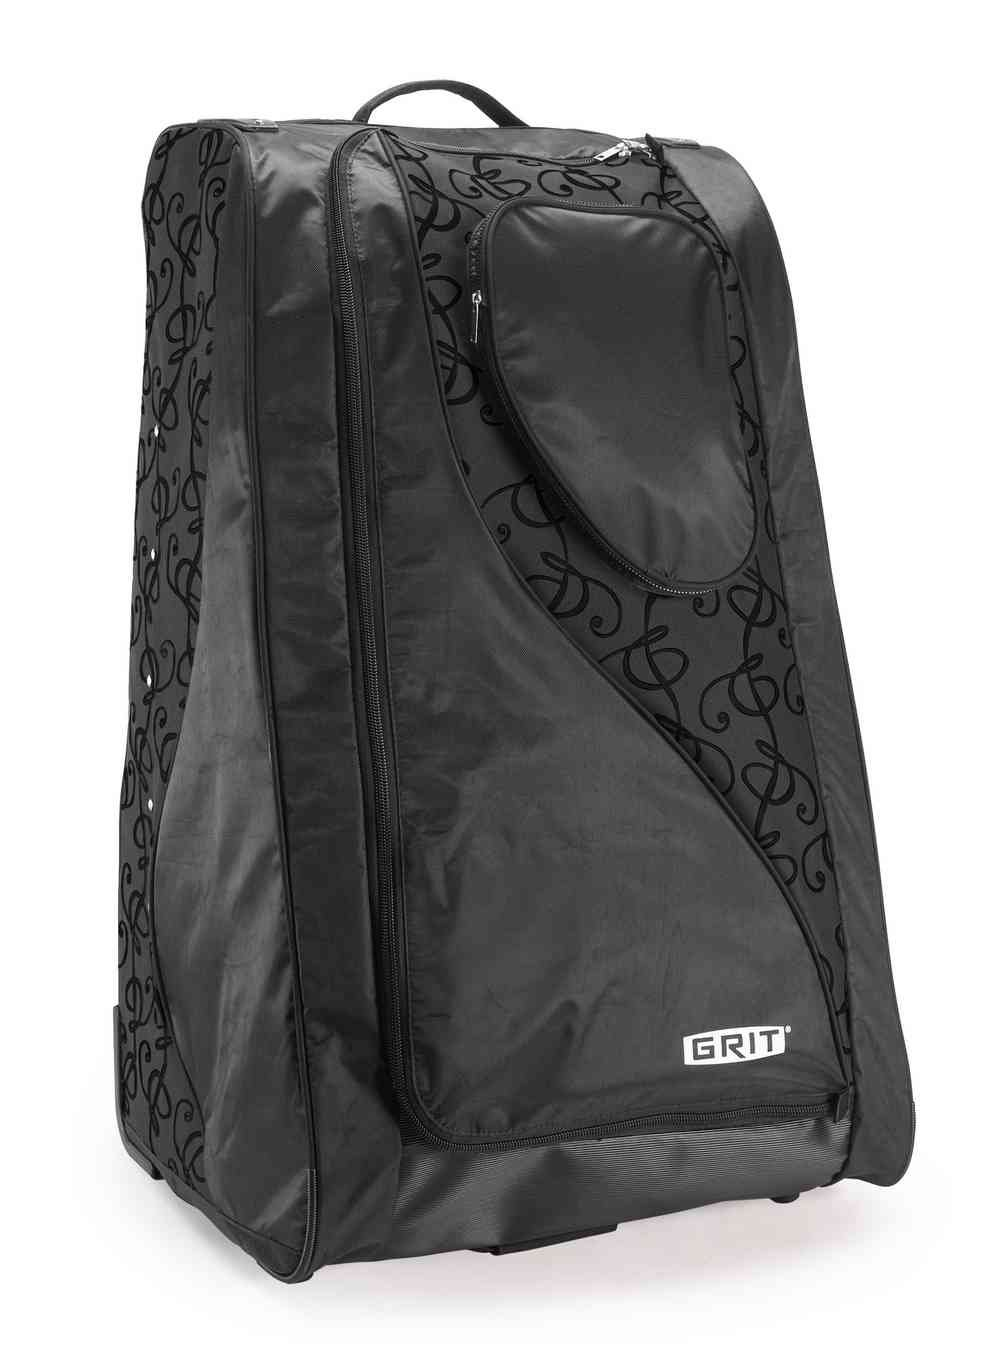 Grit Inc. DT1 Dance Tower 36'' Roller Equipment Bag, Black on Black DT1-036-BB by Grit